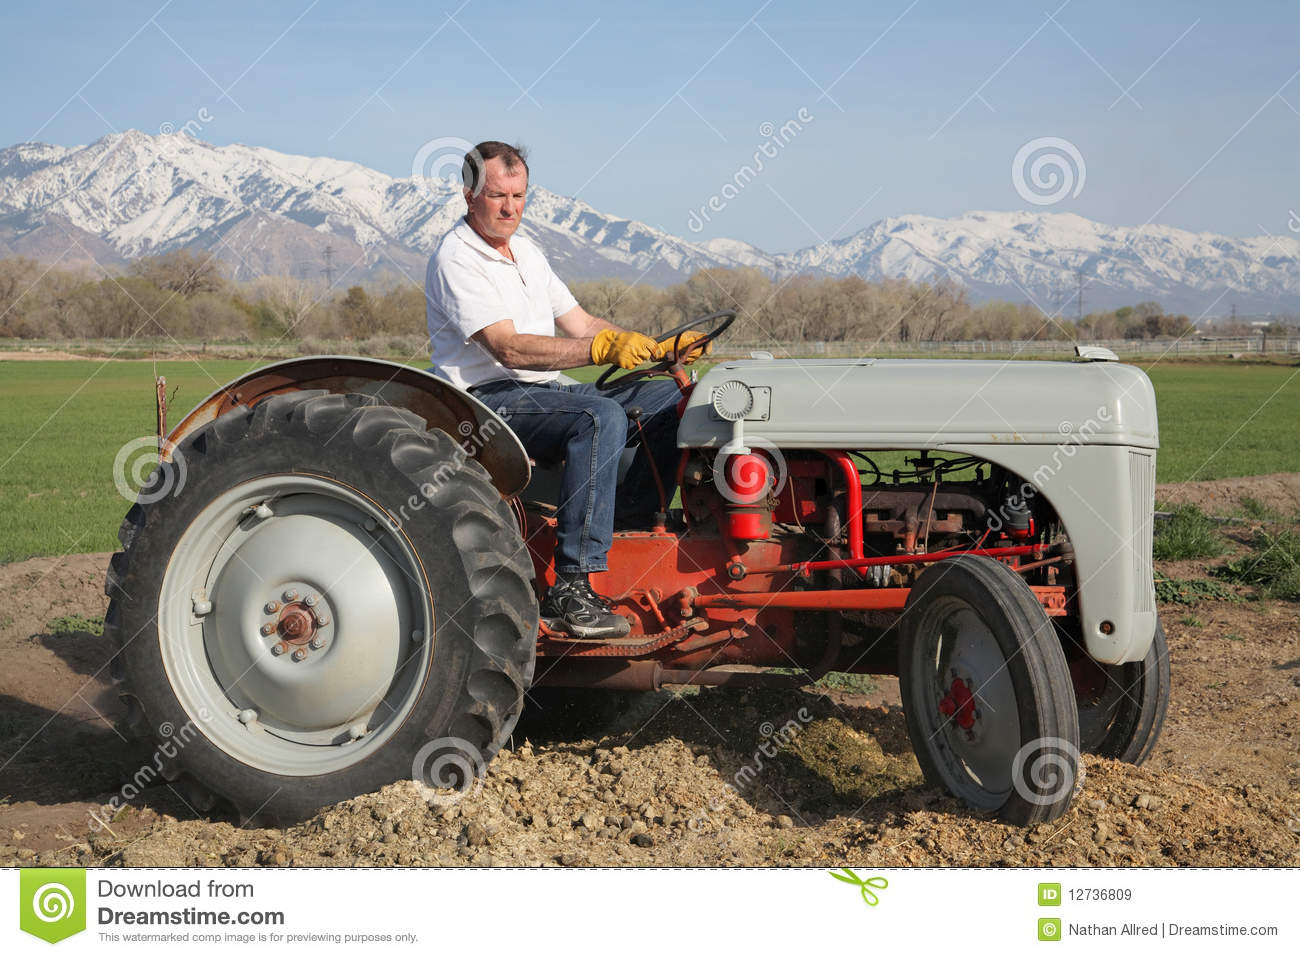 Farmer On Tractor : Farmer on tractor stock image of agriculture